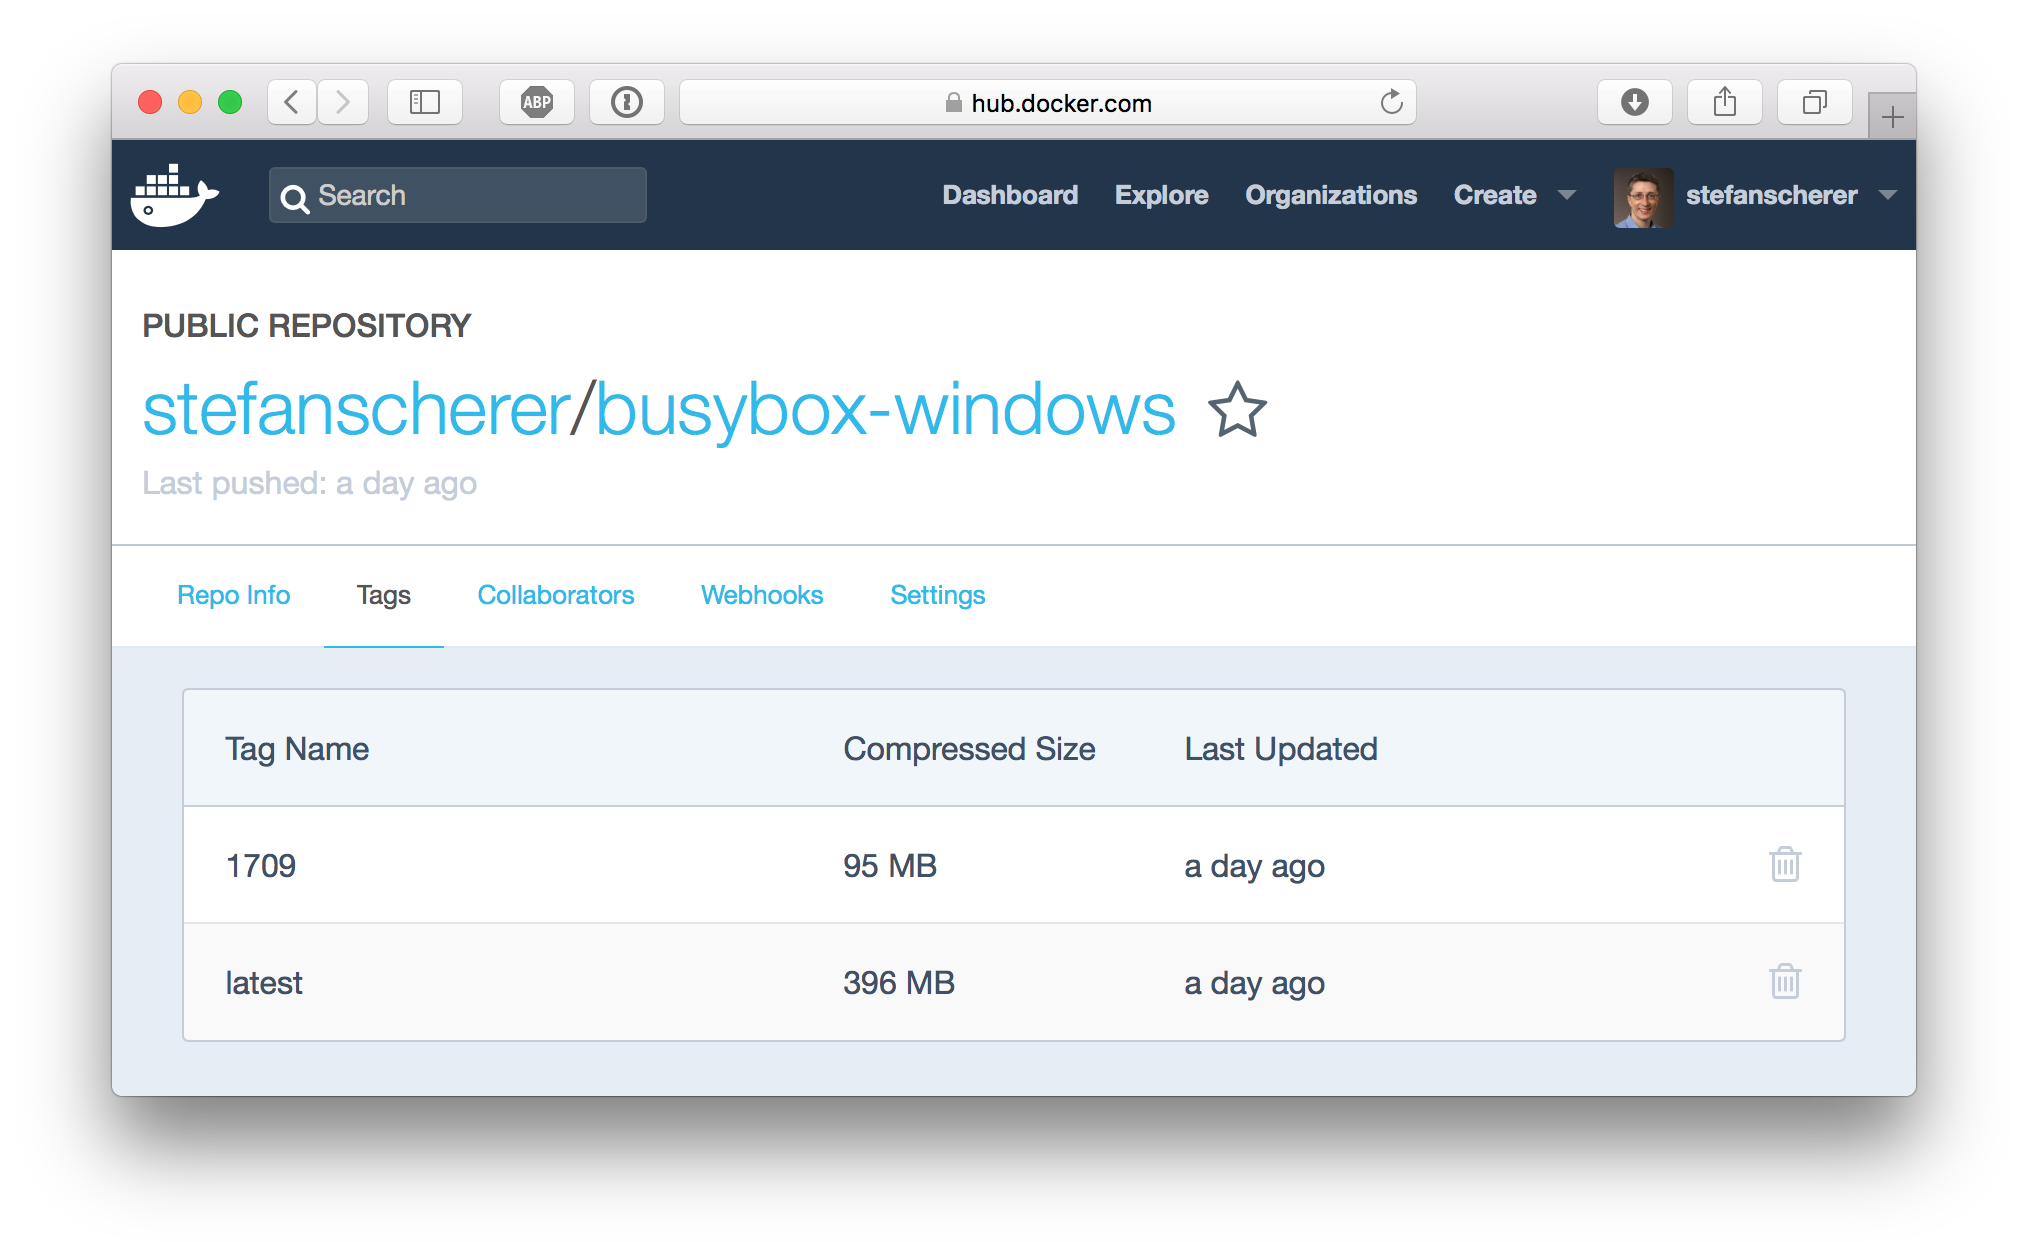 docker-hub-busybox-windows